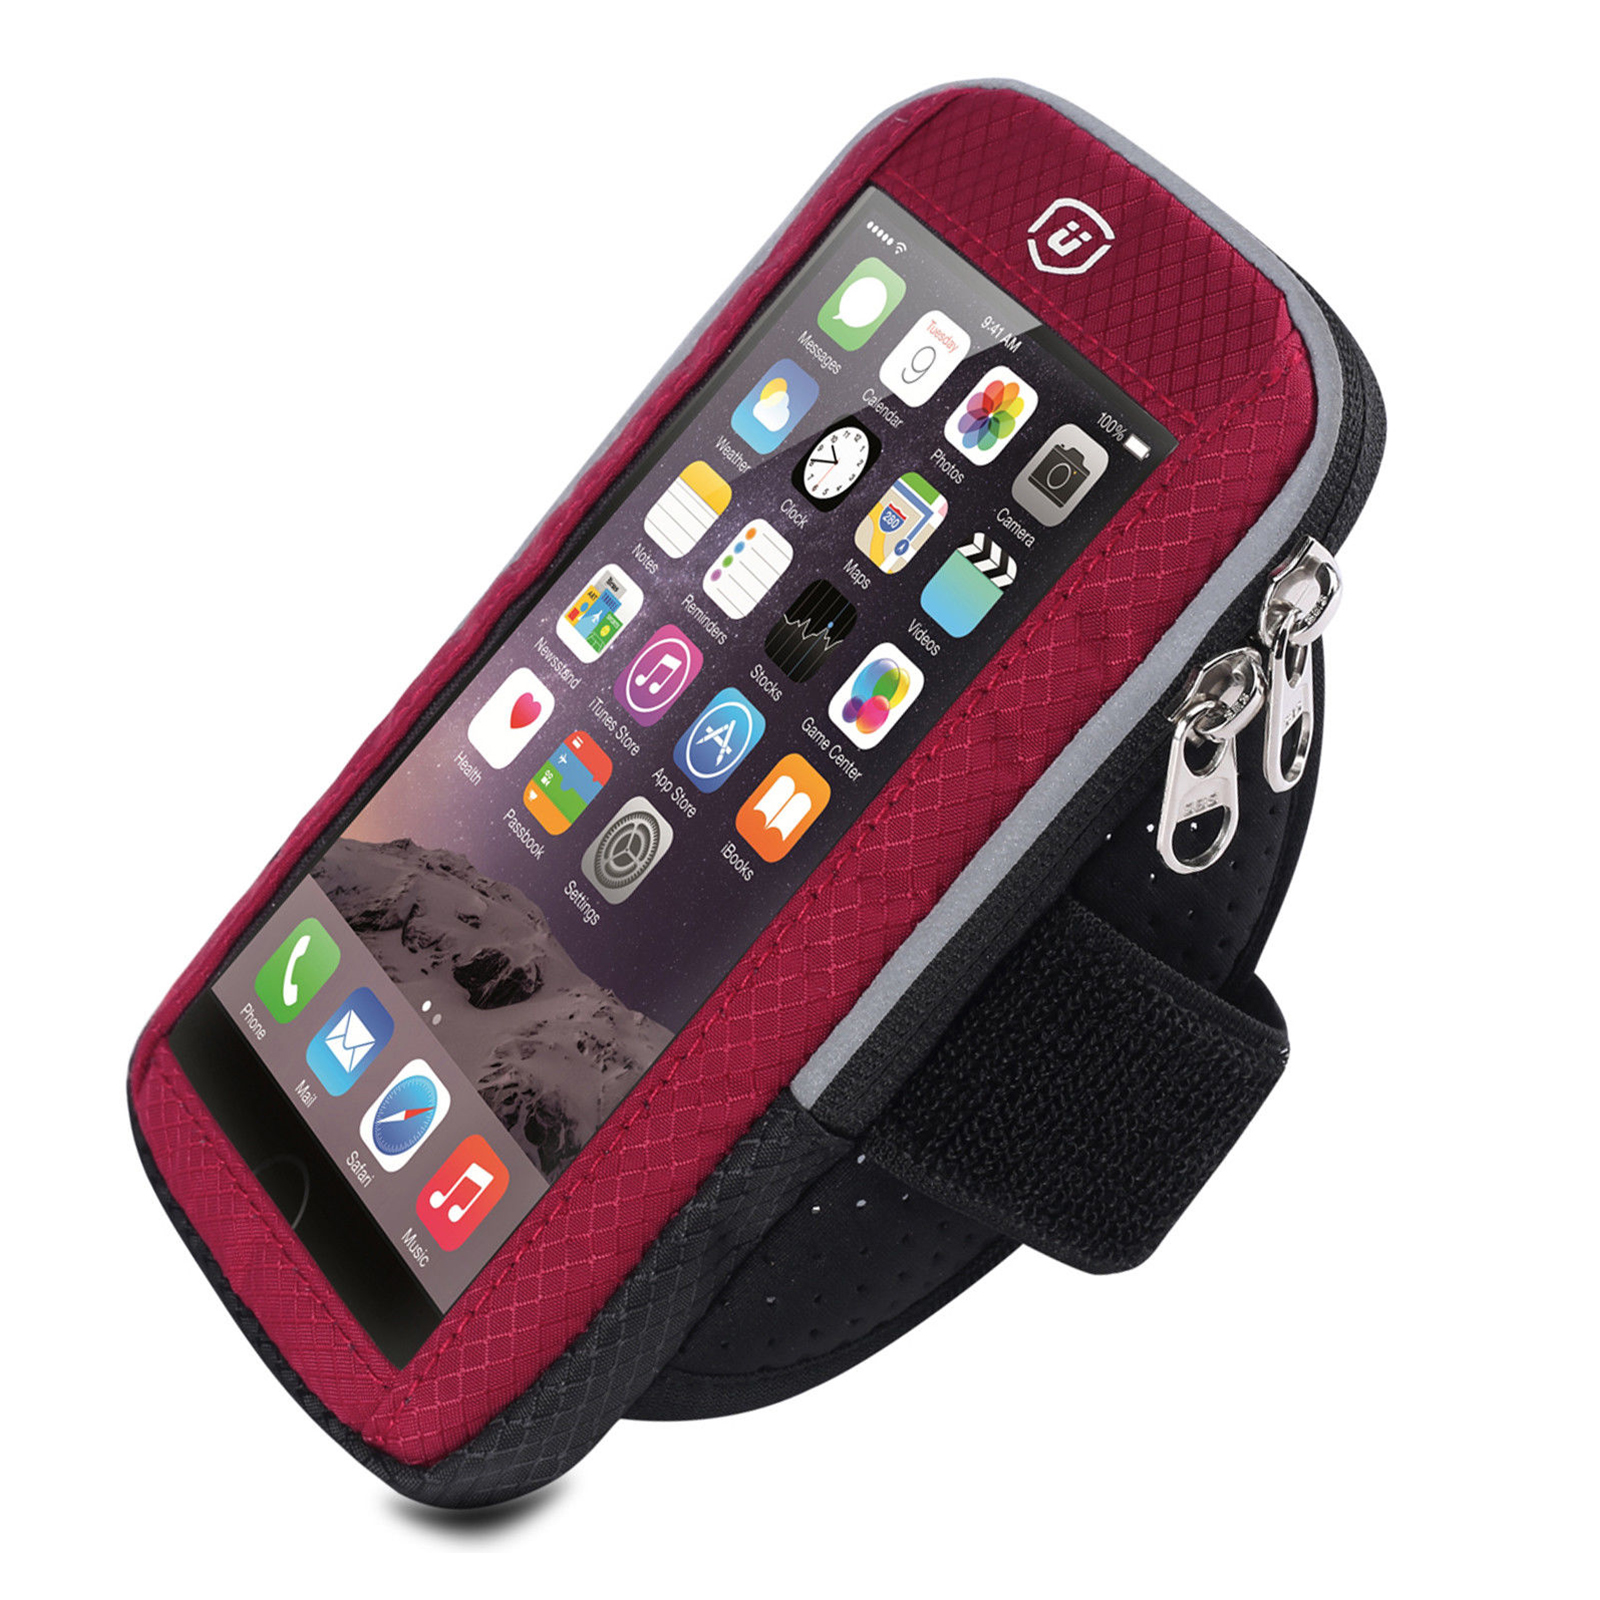 Sports-Running-Jogging-Waterproof-Gym-Armband-Arm-Bag-Case-Holder-for-Cellphone